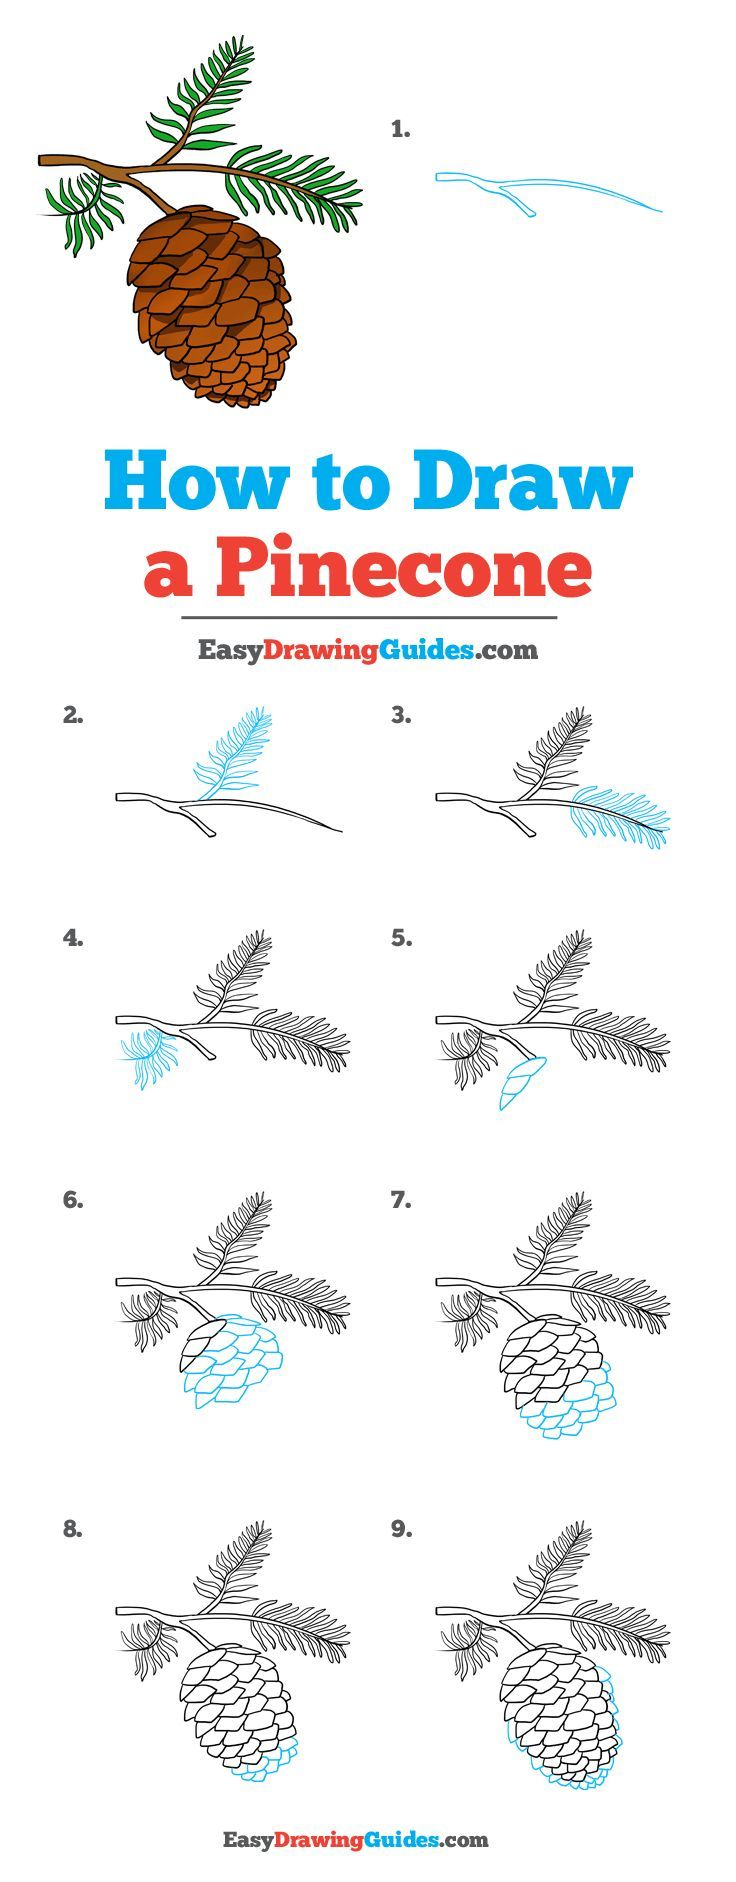 How to Draw a Pinecone Drawing tutorial easy, Easy